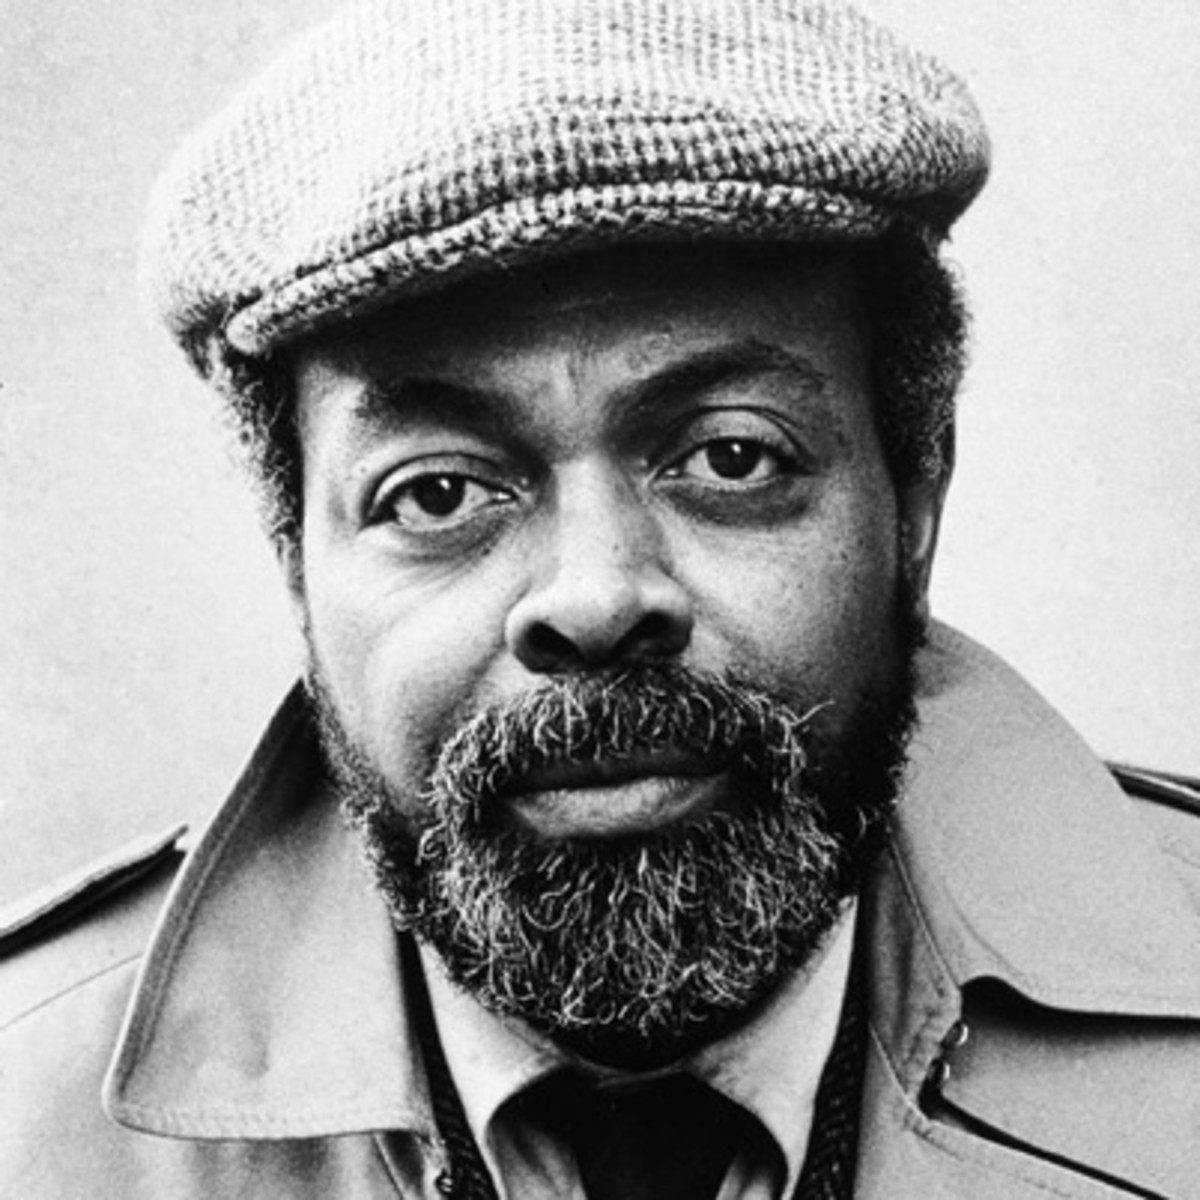 a research on sonia sanchez and james baldwin I say: speaking agency in sonia sanchez's of research and inclusion guest blogger hbw icymi in memoriam james baldwin jerry w ward jr kansas lists.